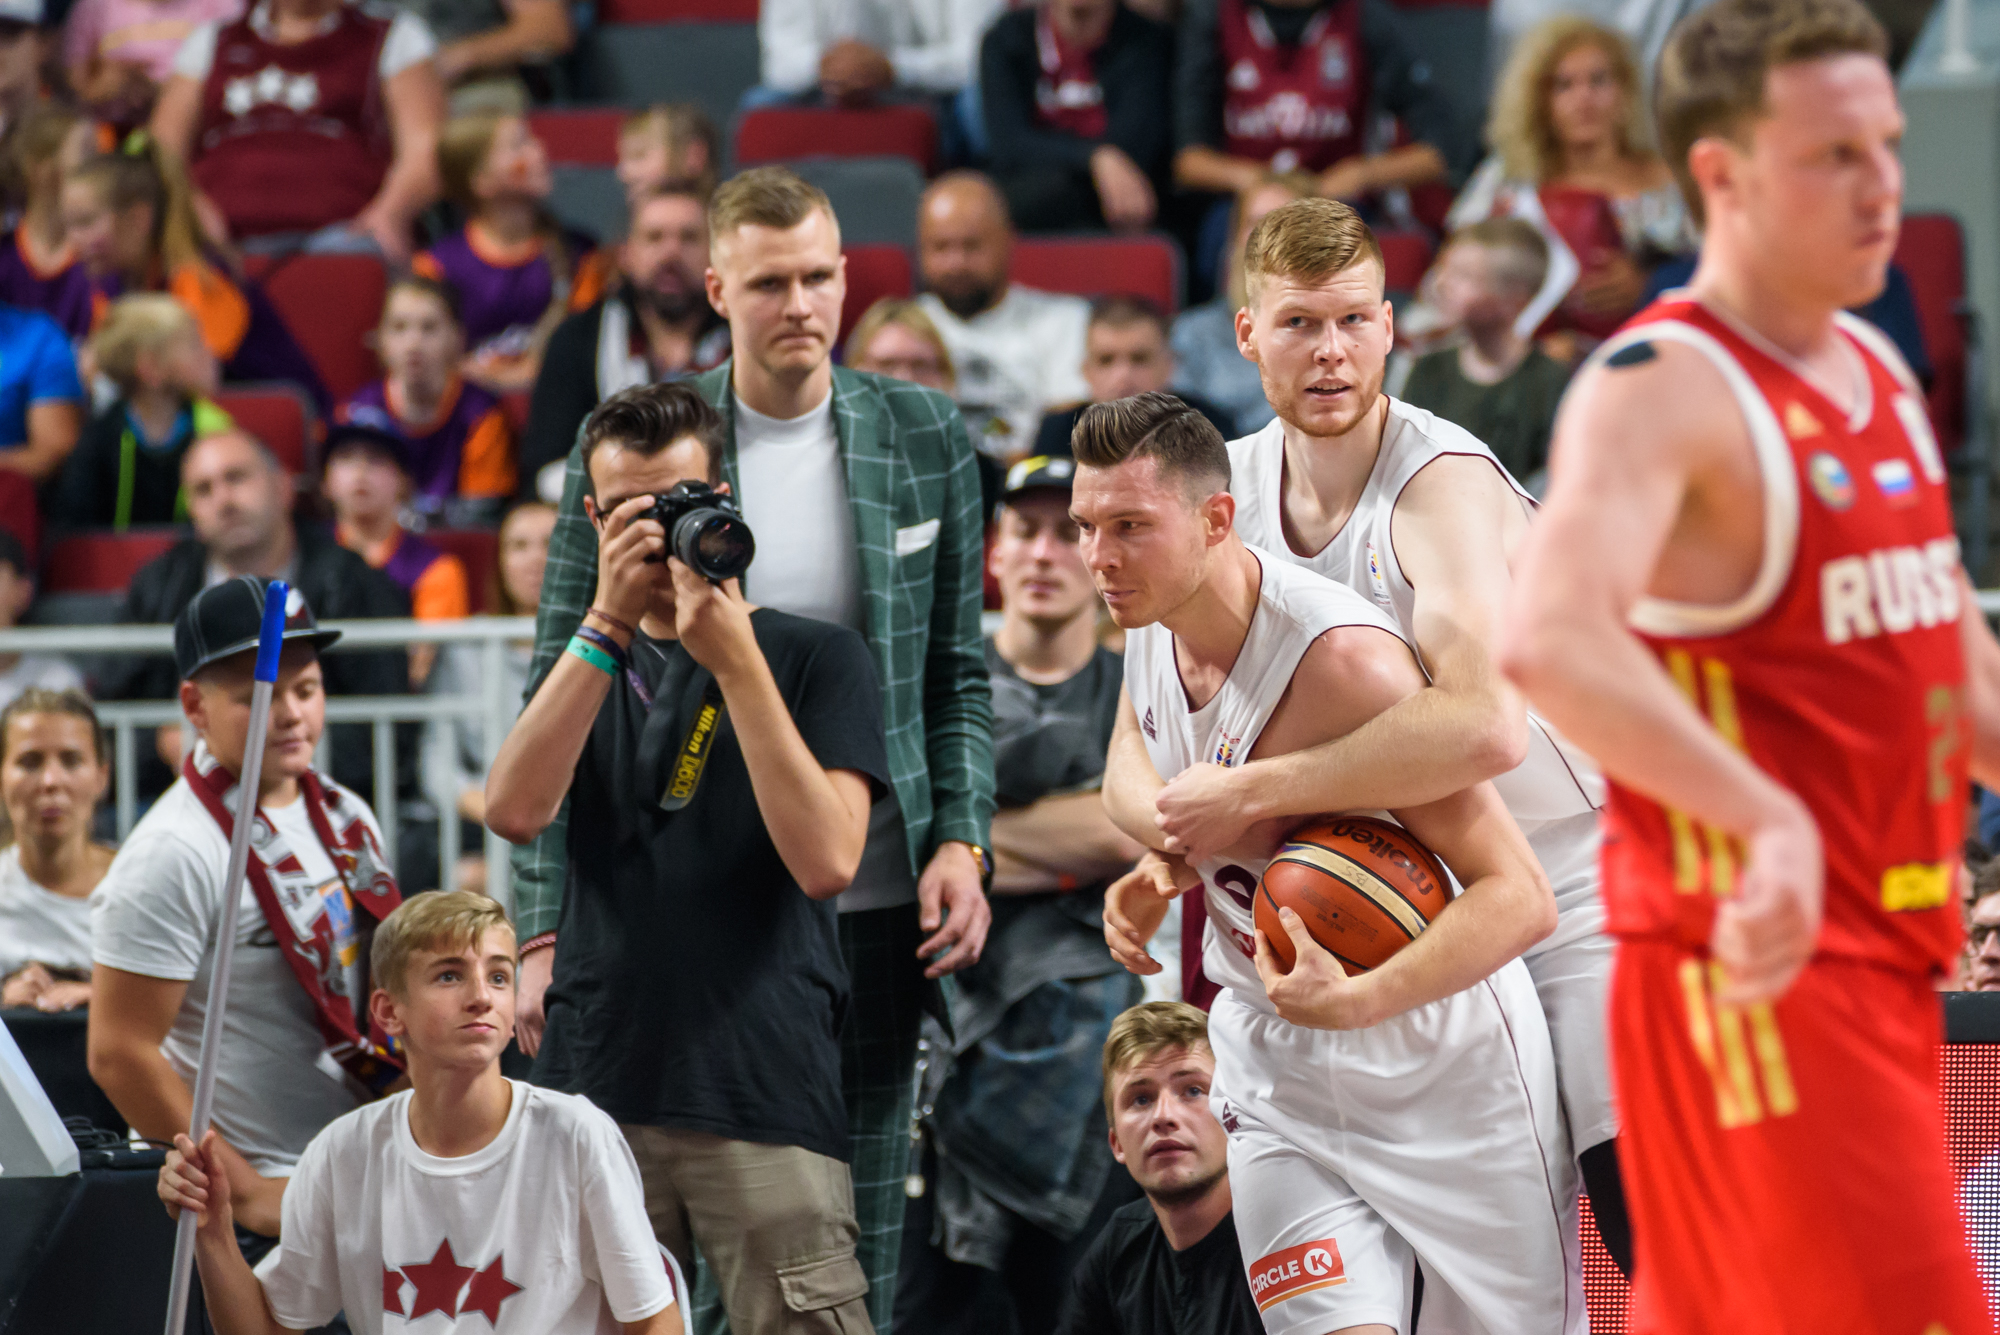 25.06.2018. RIGA, LATVIA. National men's basketball team of Latvia and National men's basketball team of Russia.